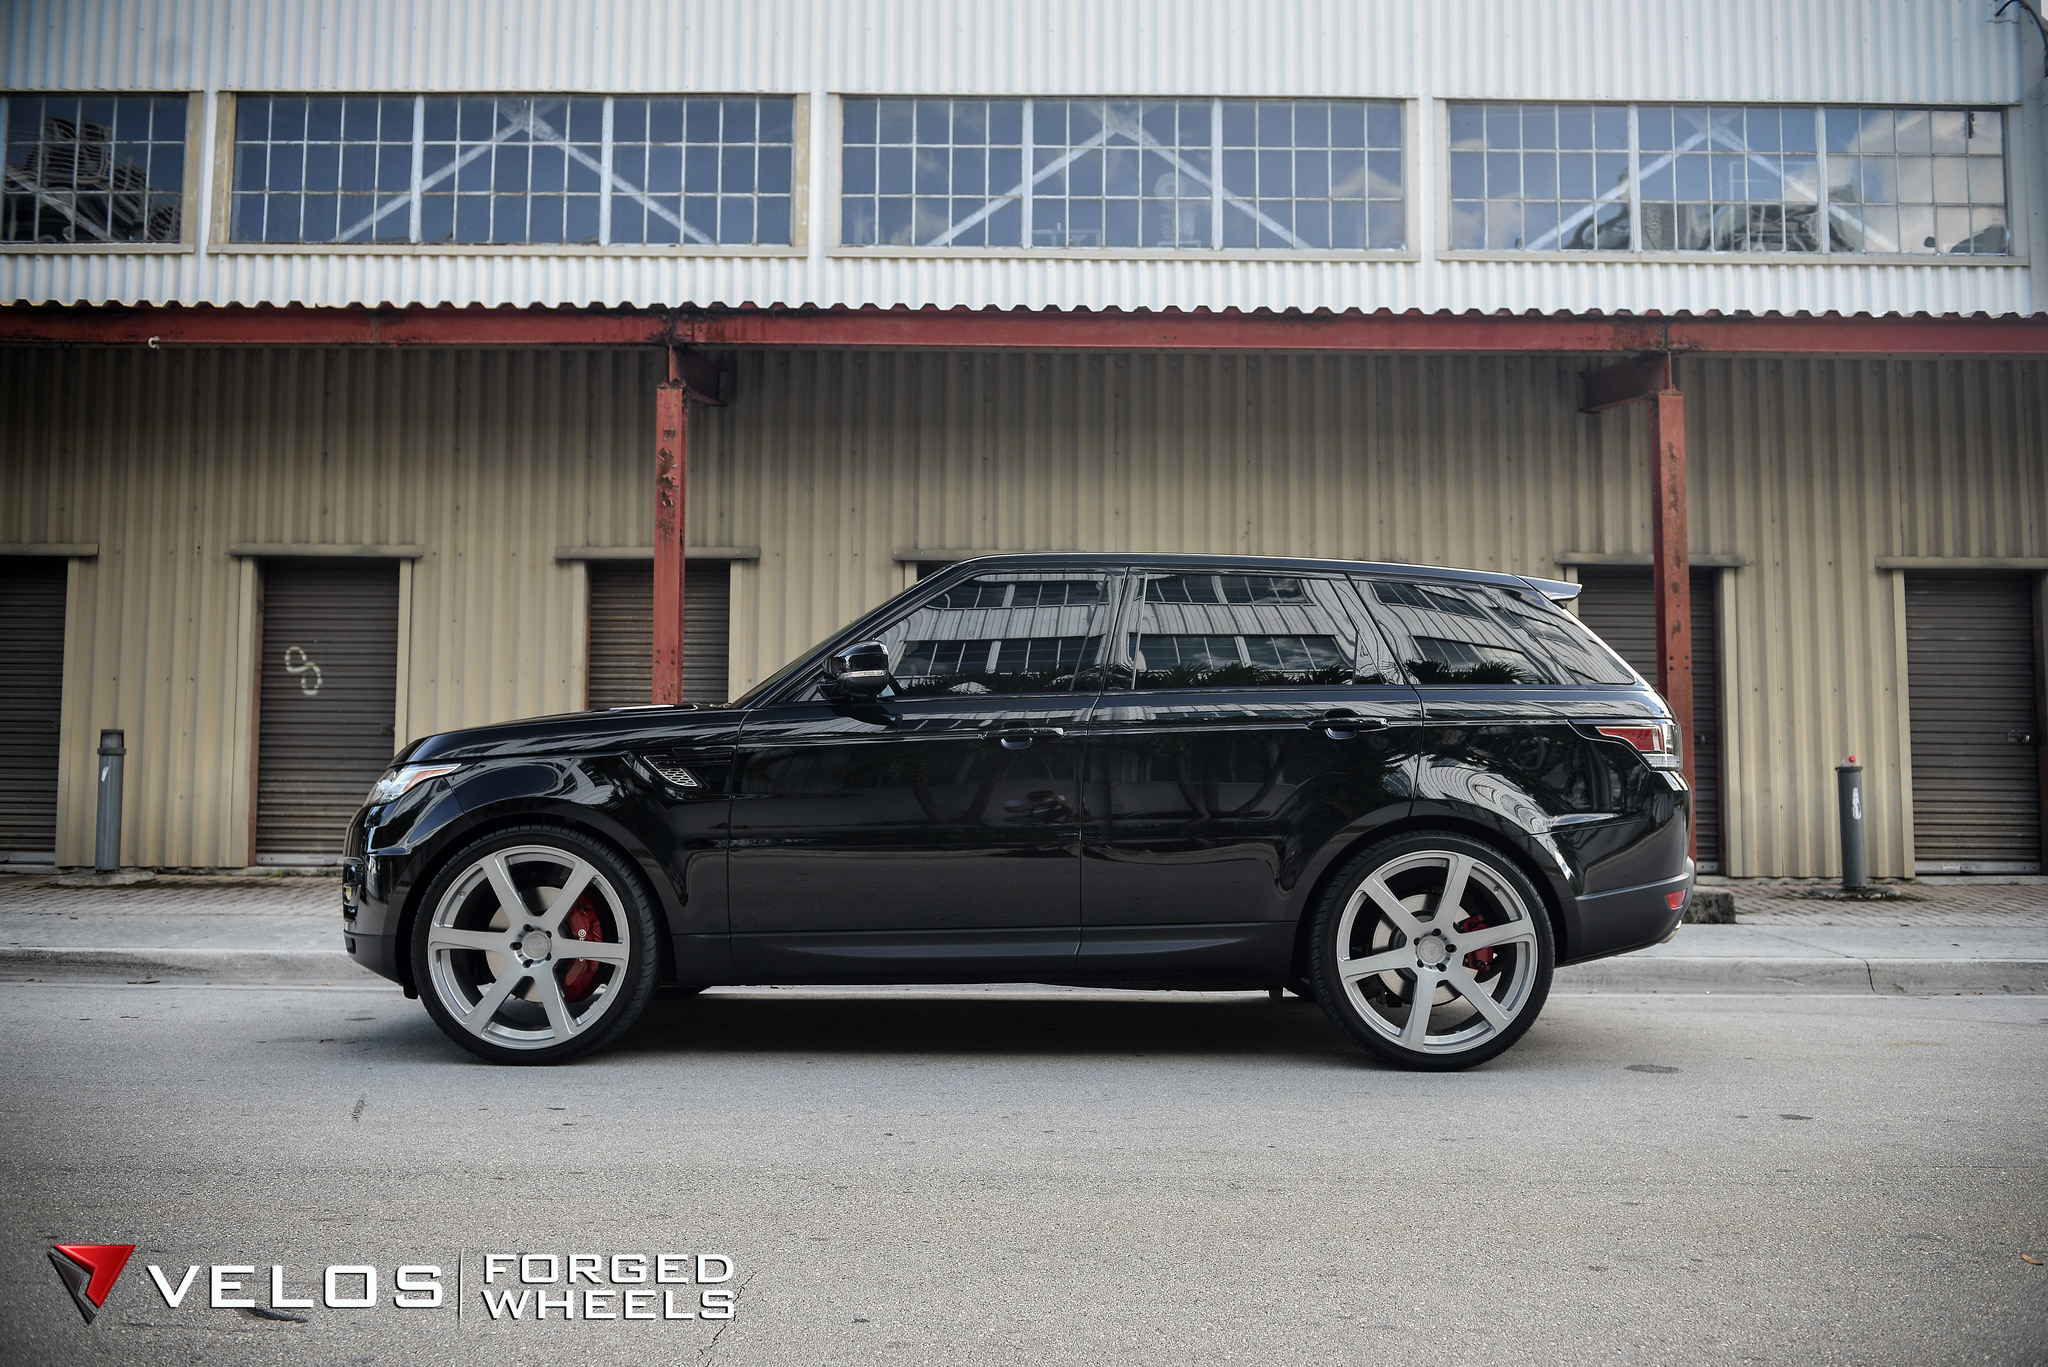 2015 Range Rover Sport Supercharged on Velos Solo VI Forged Wheels